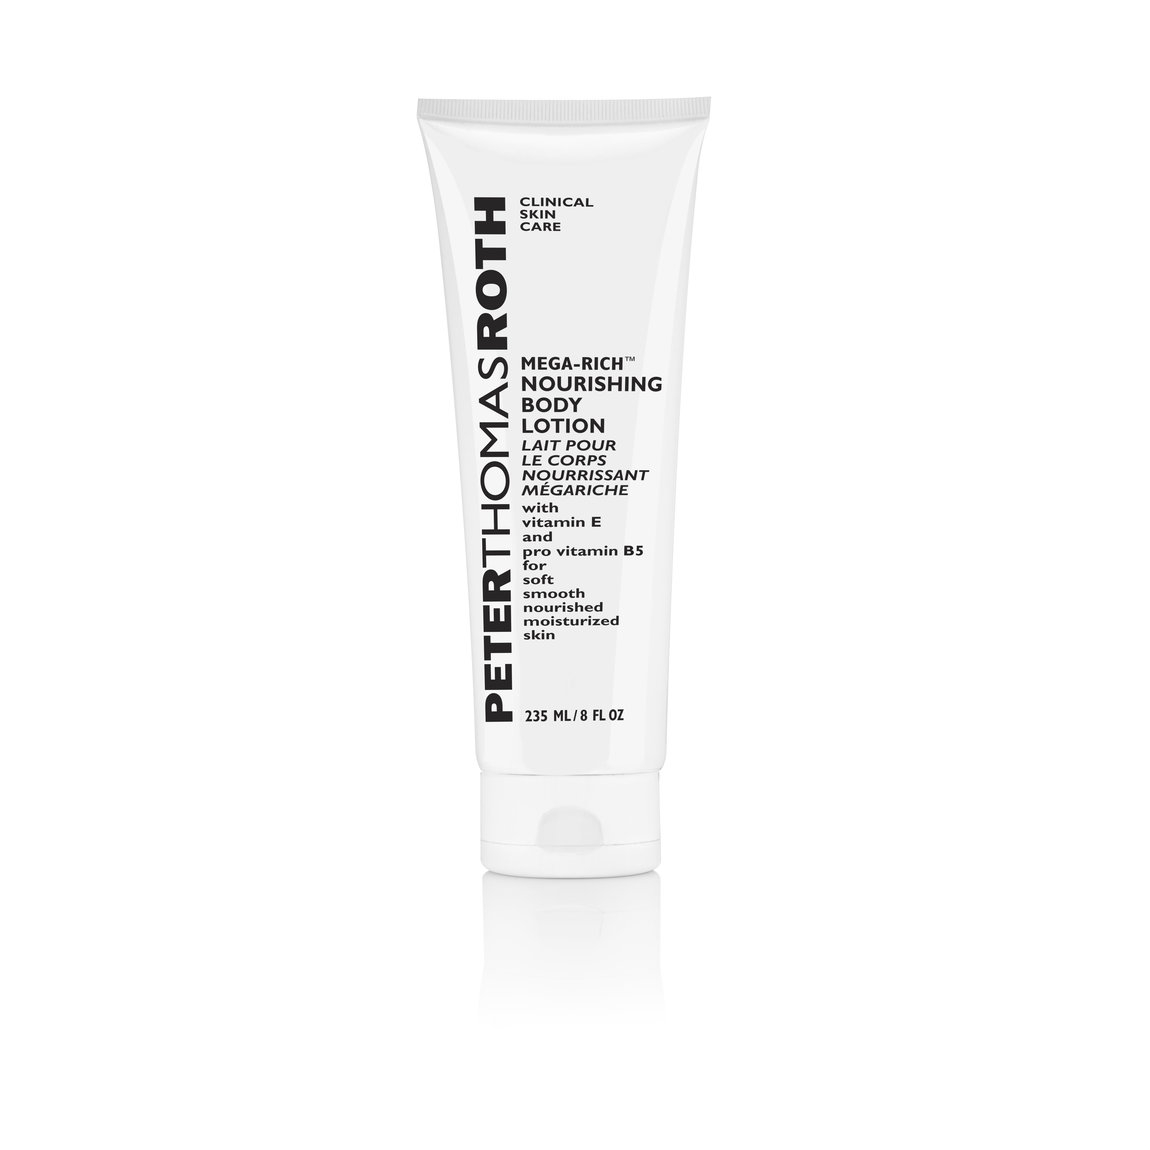 Peter Thomas Roth Mega-Rich Body Lotion product smear.